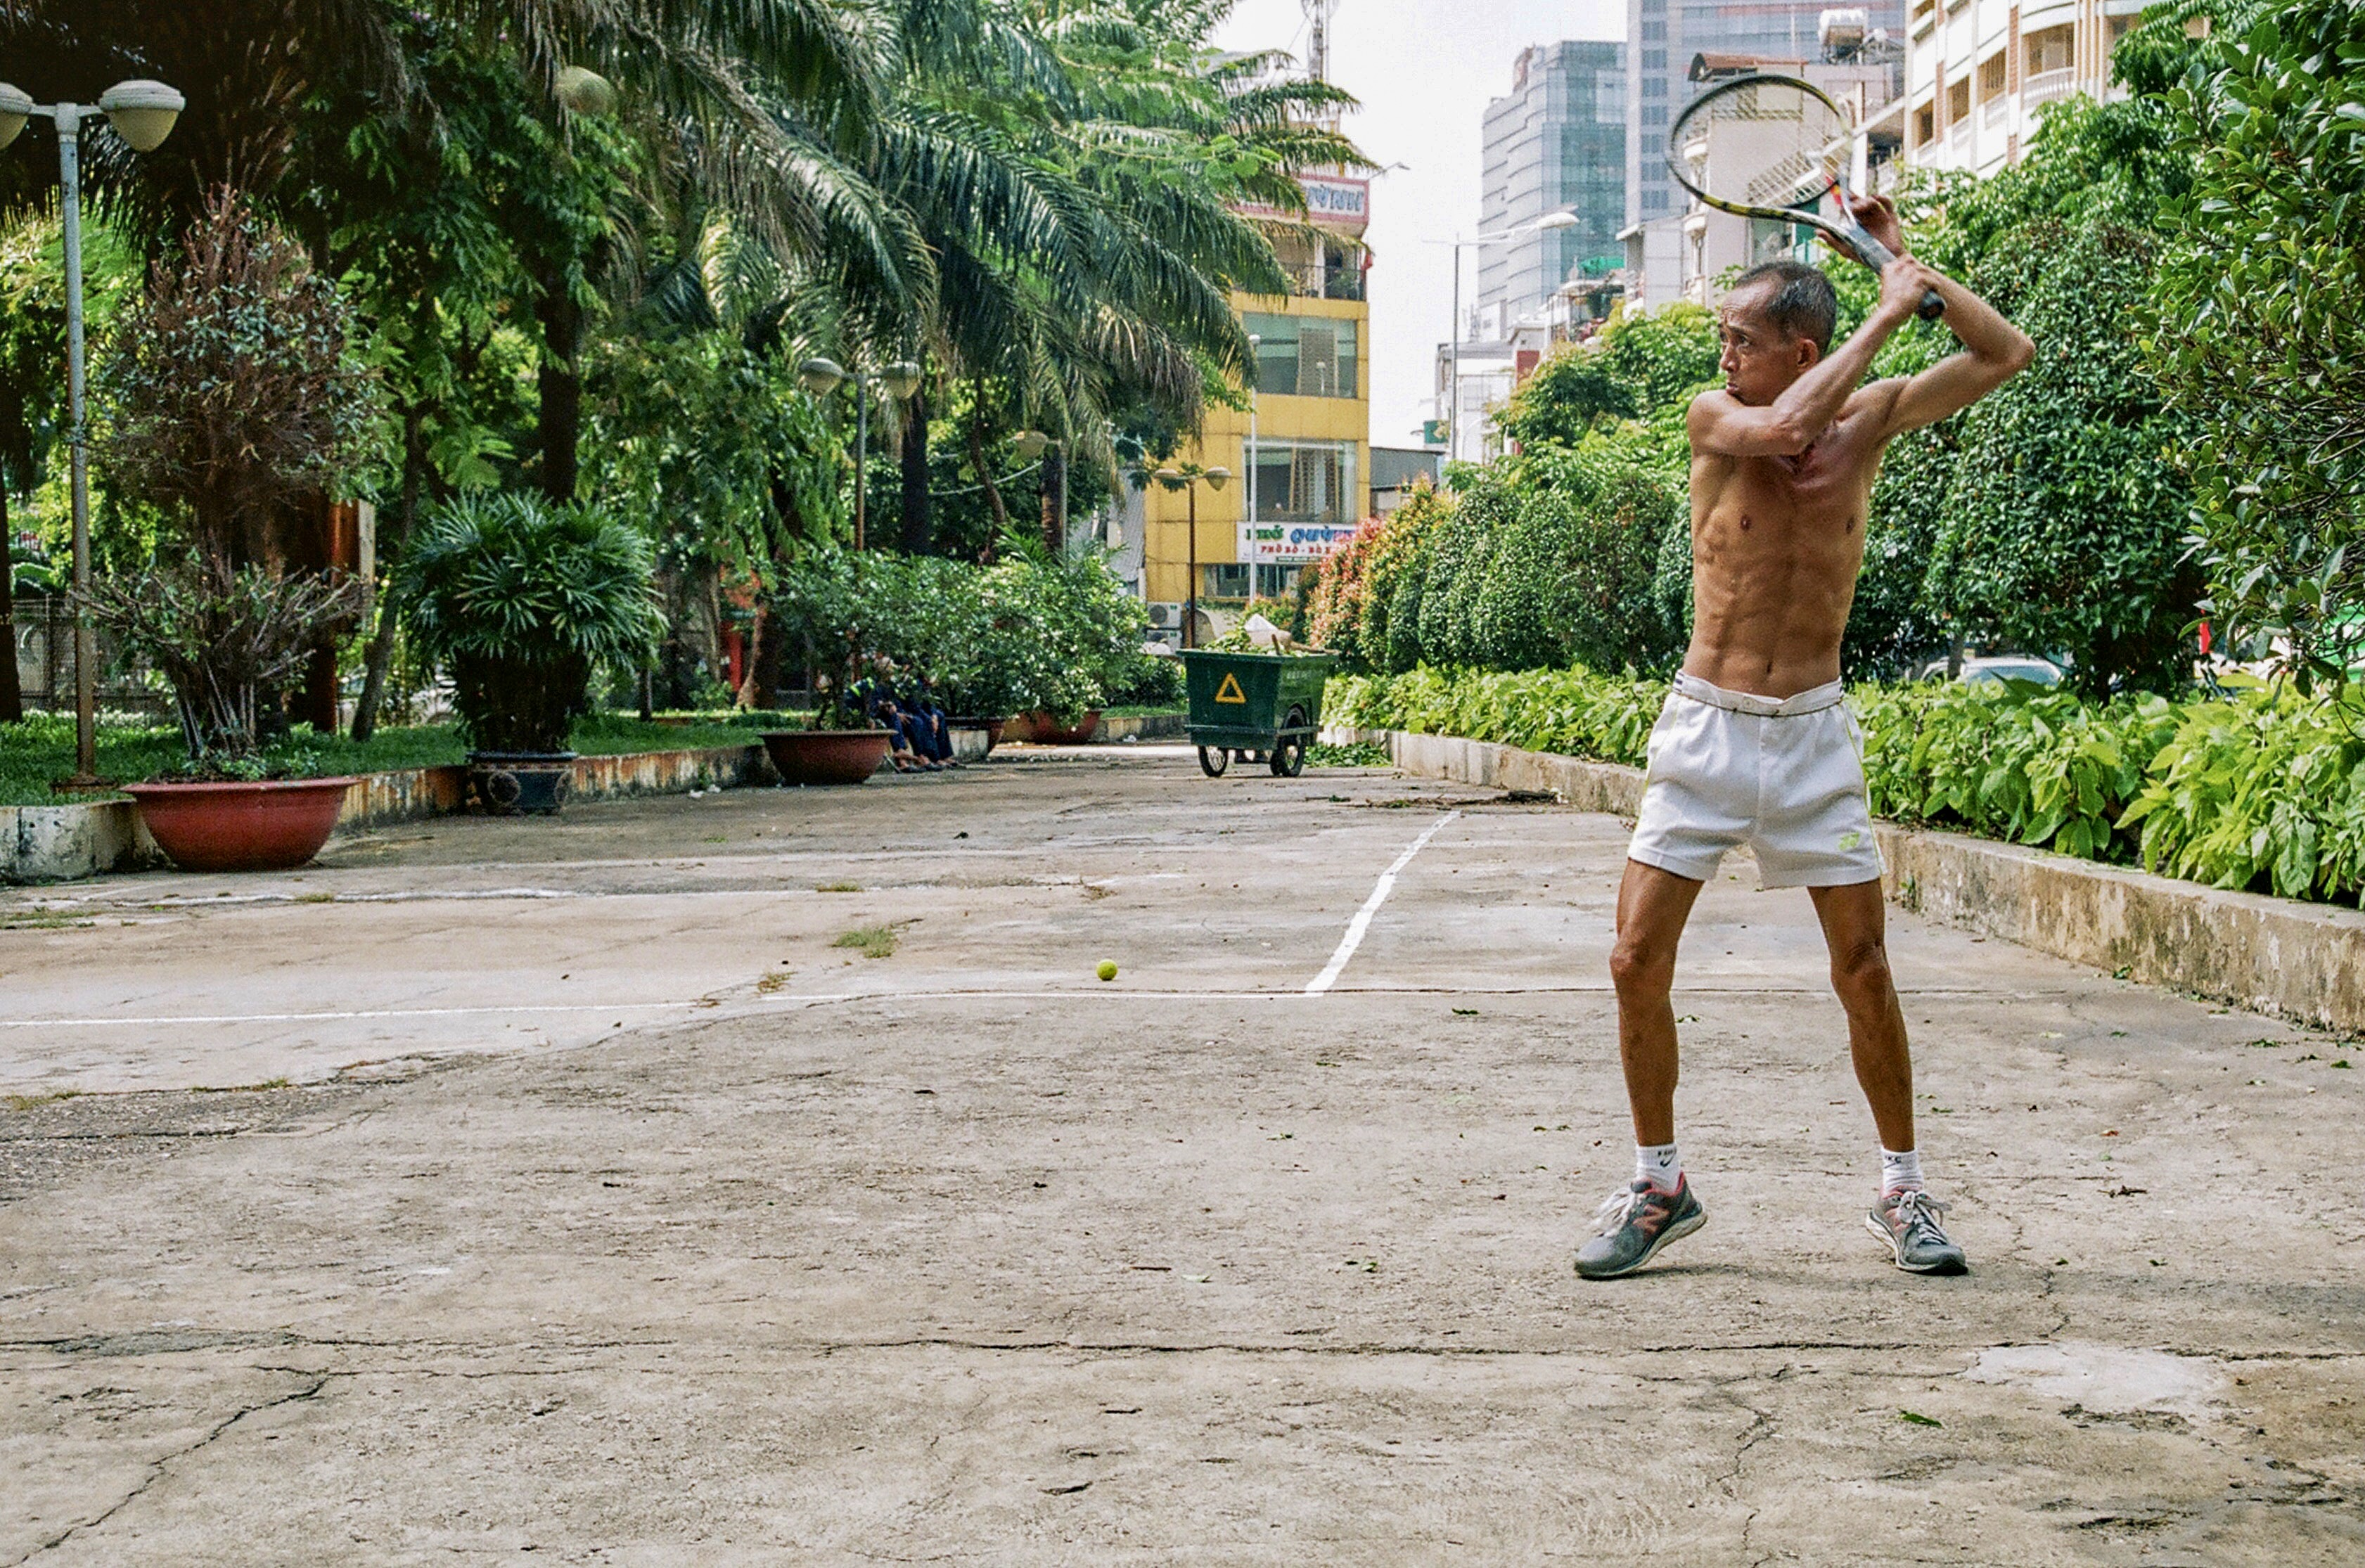 Man About to Strike Using Tennis Racket